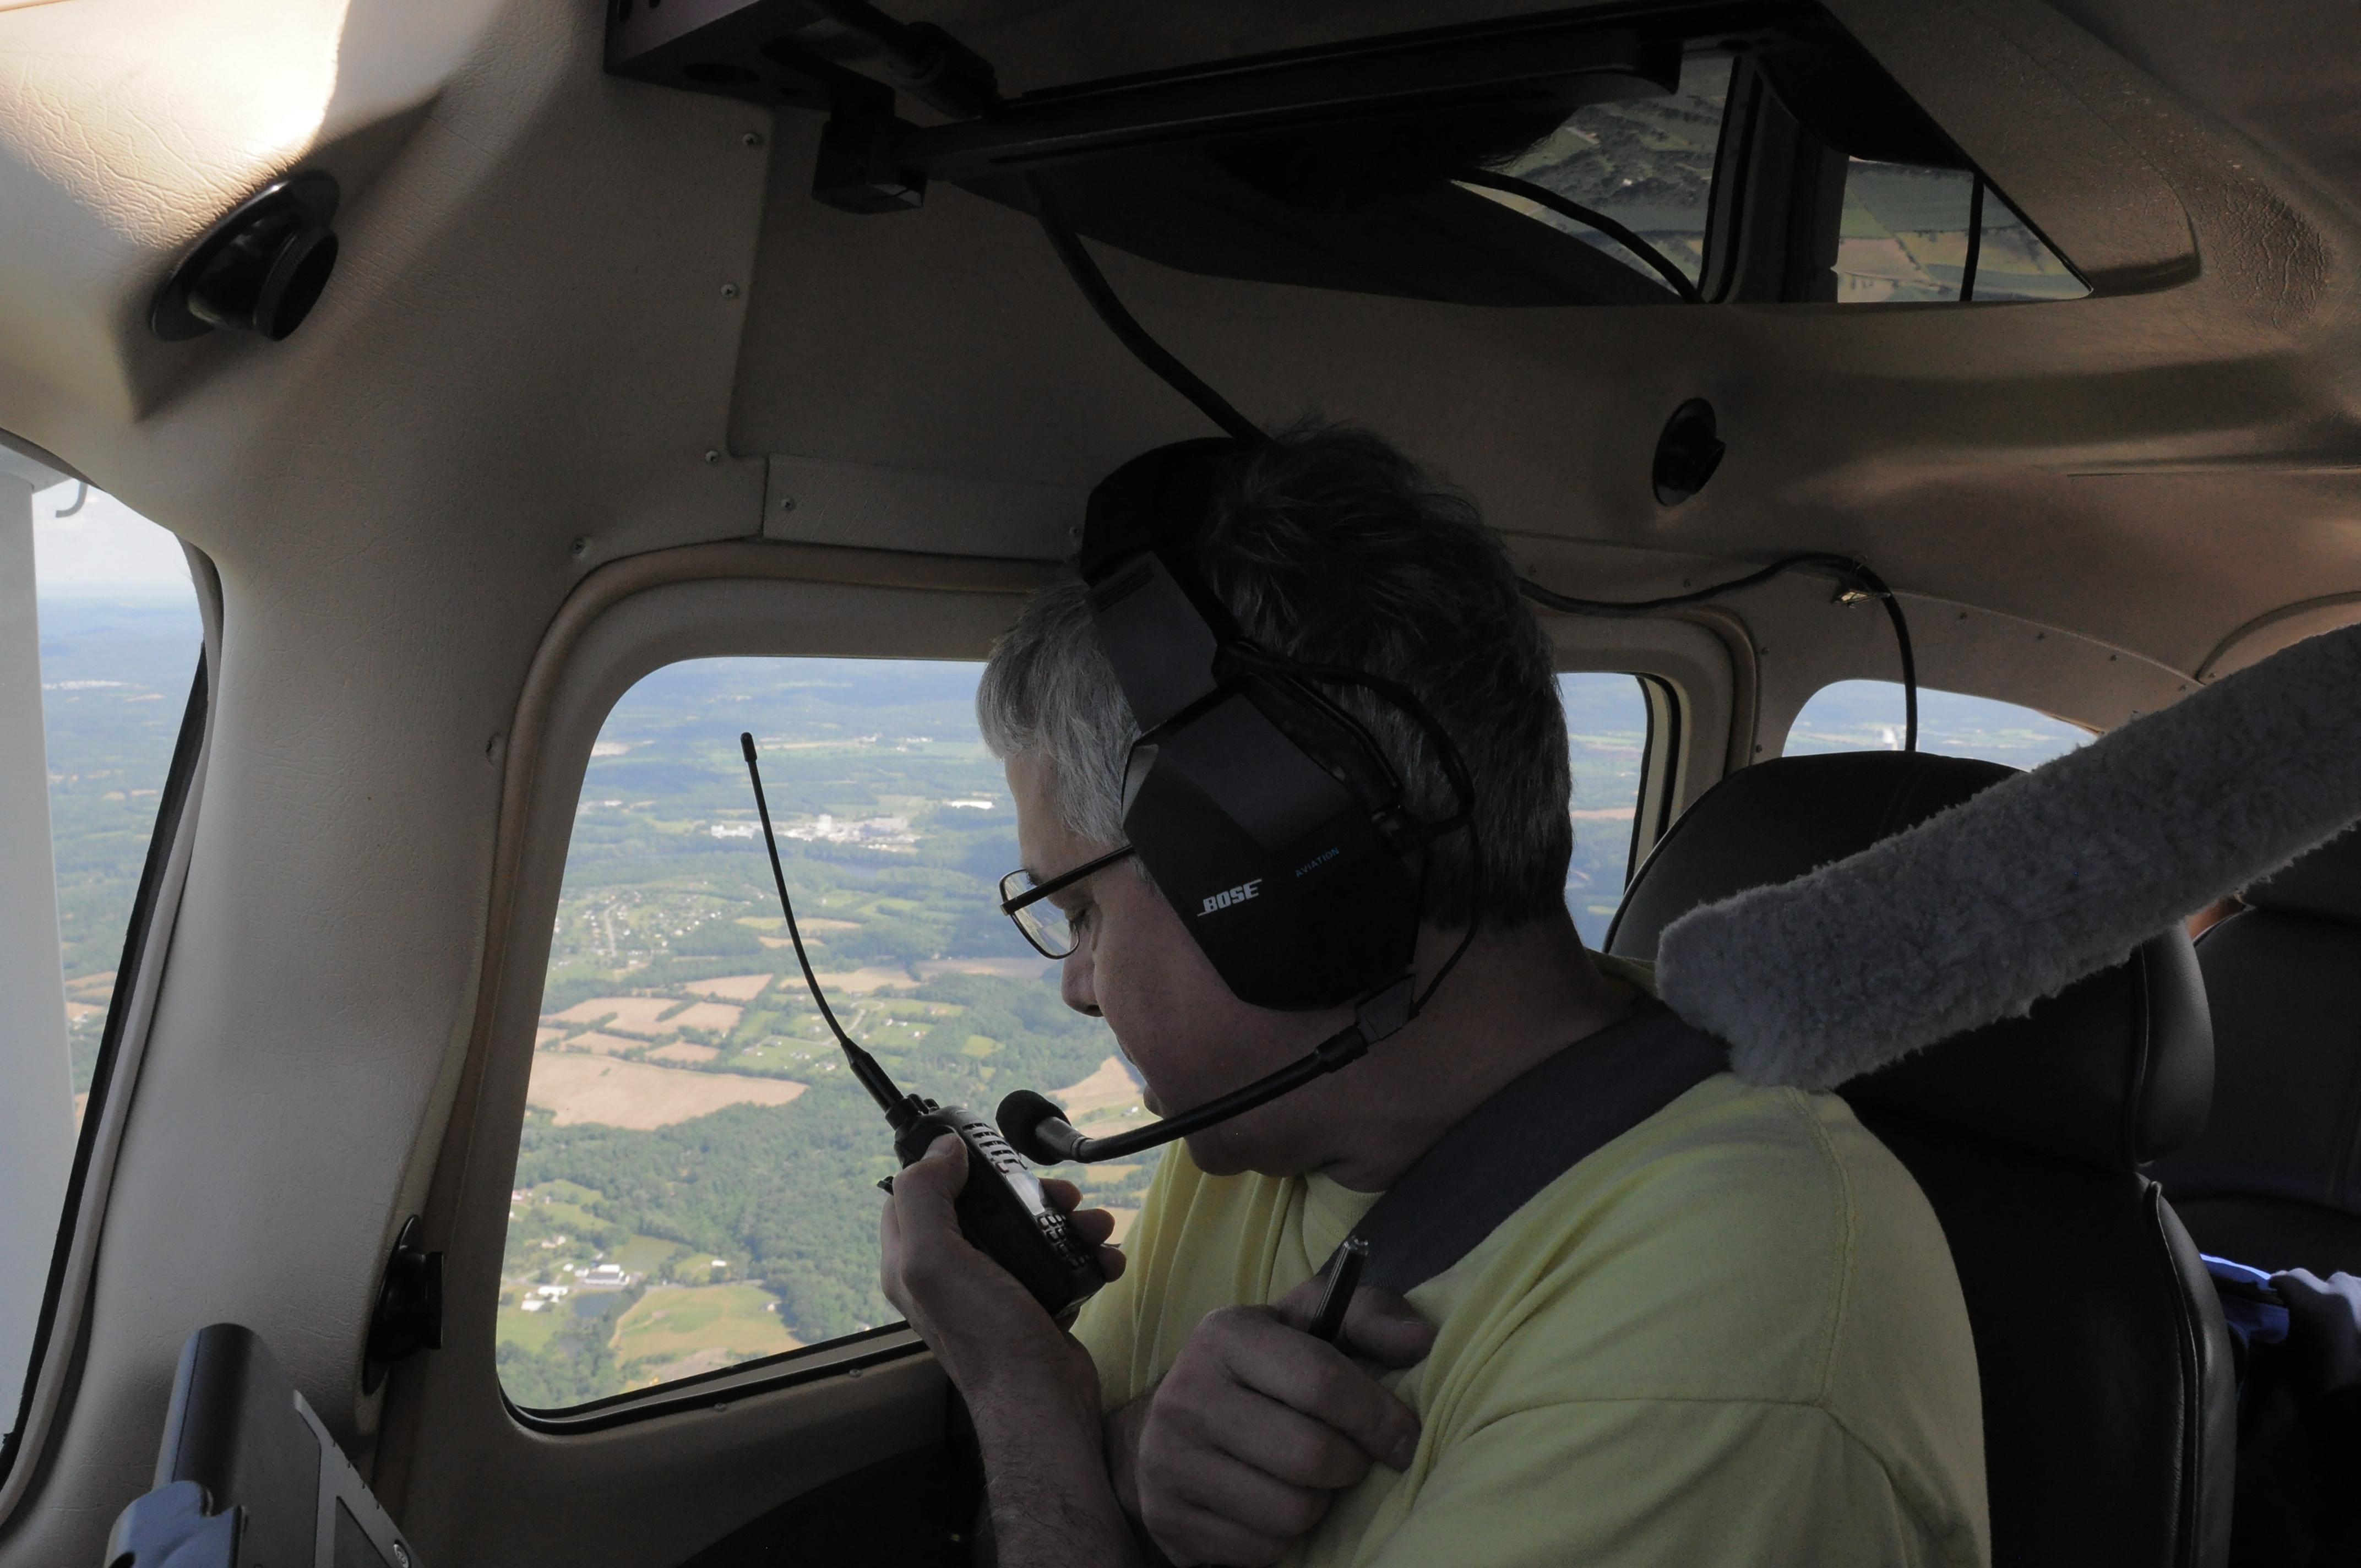 K3RF in copilots seat talking to a group on the ground